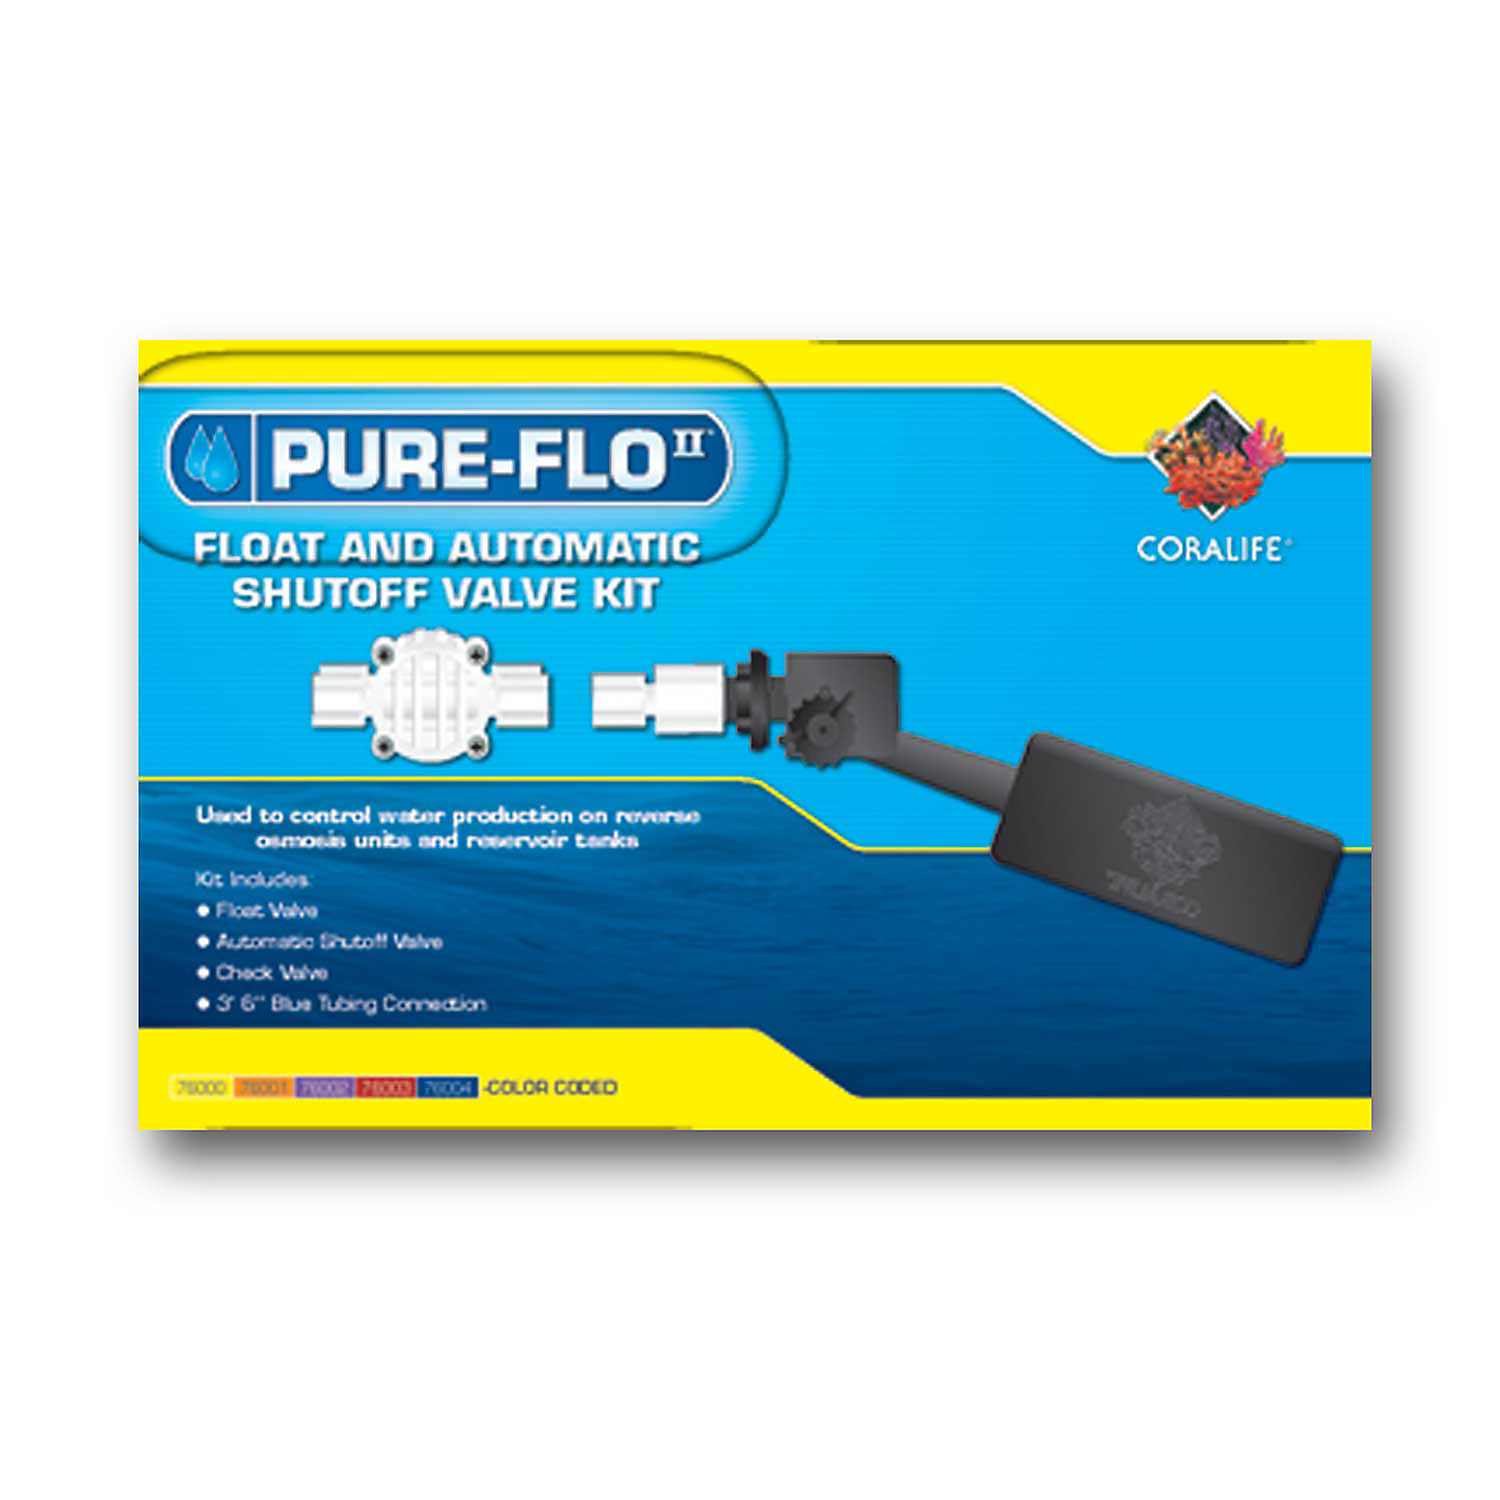 Coralife Pure Flo Ii Reverse Osmosis Float Valve With Auto Shut Off Valve 9.6 L X 3.8 W X 2.8 H